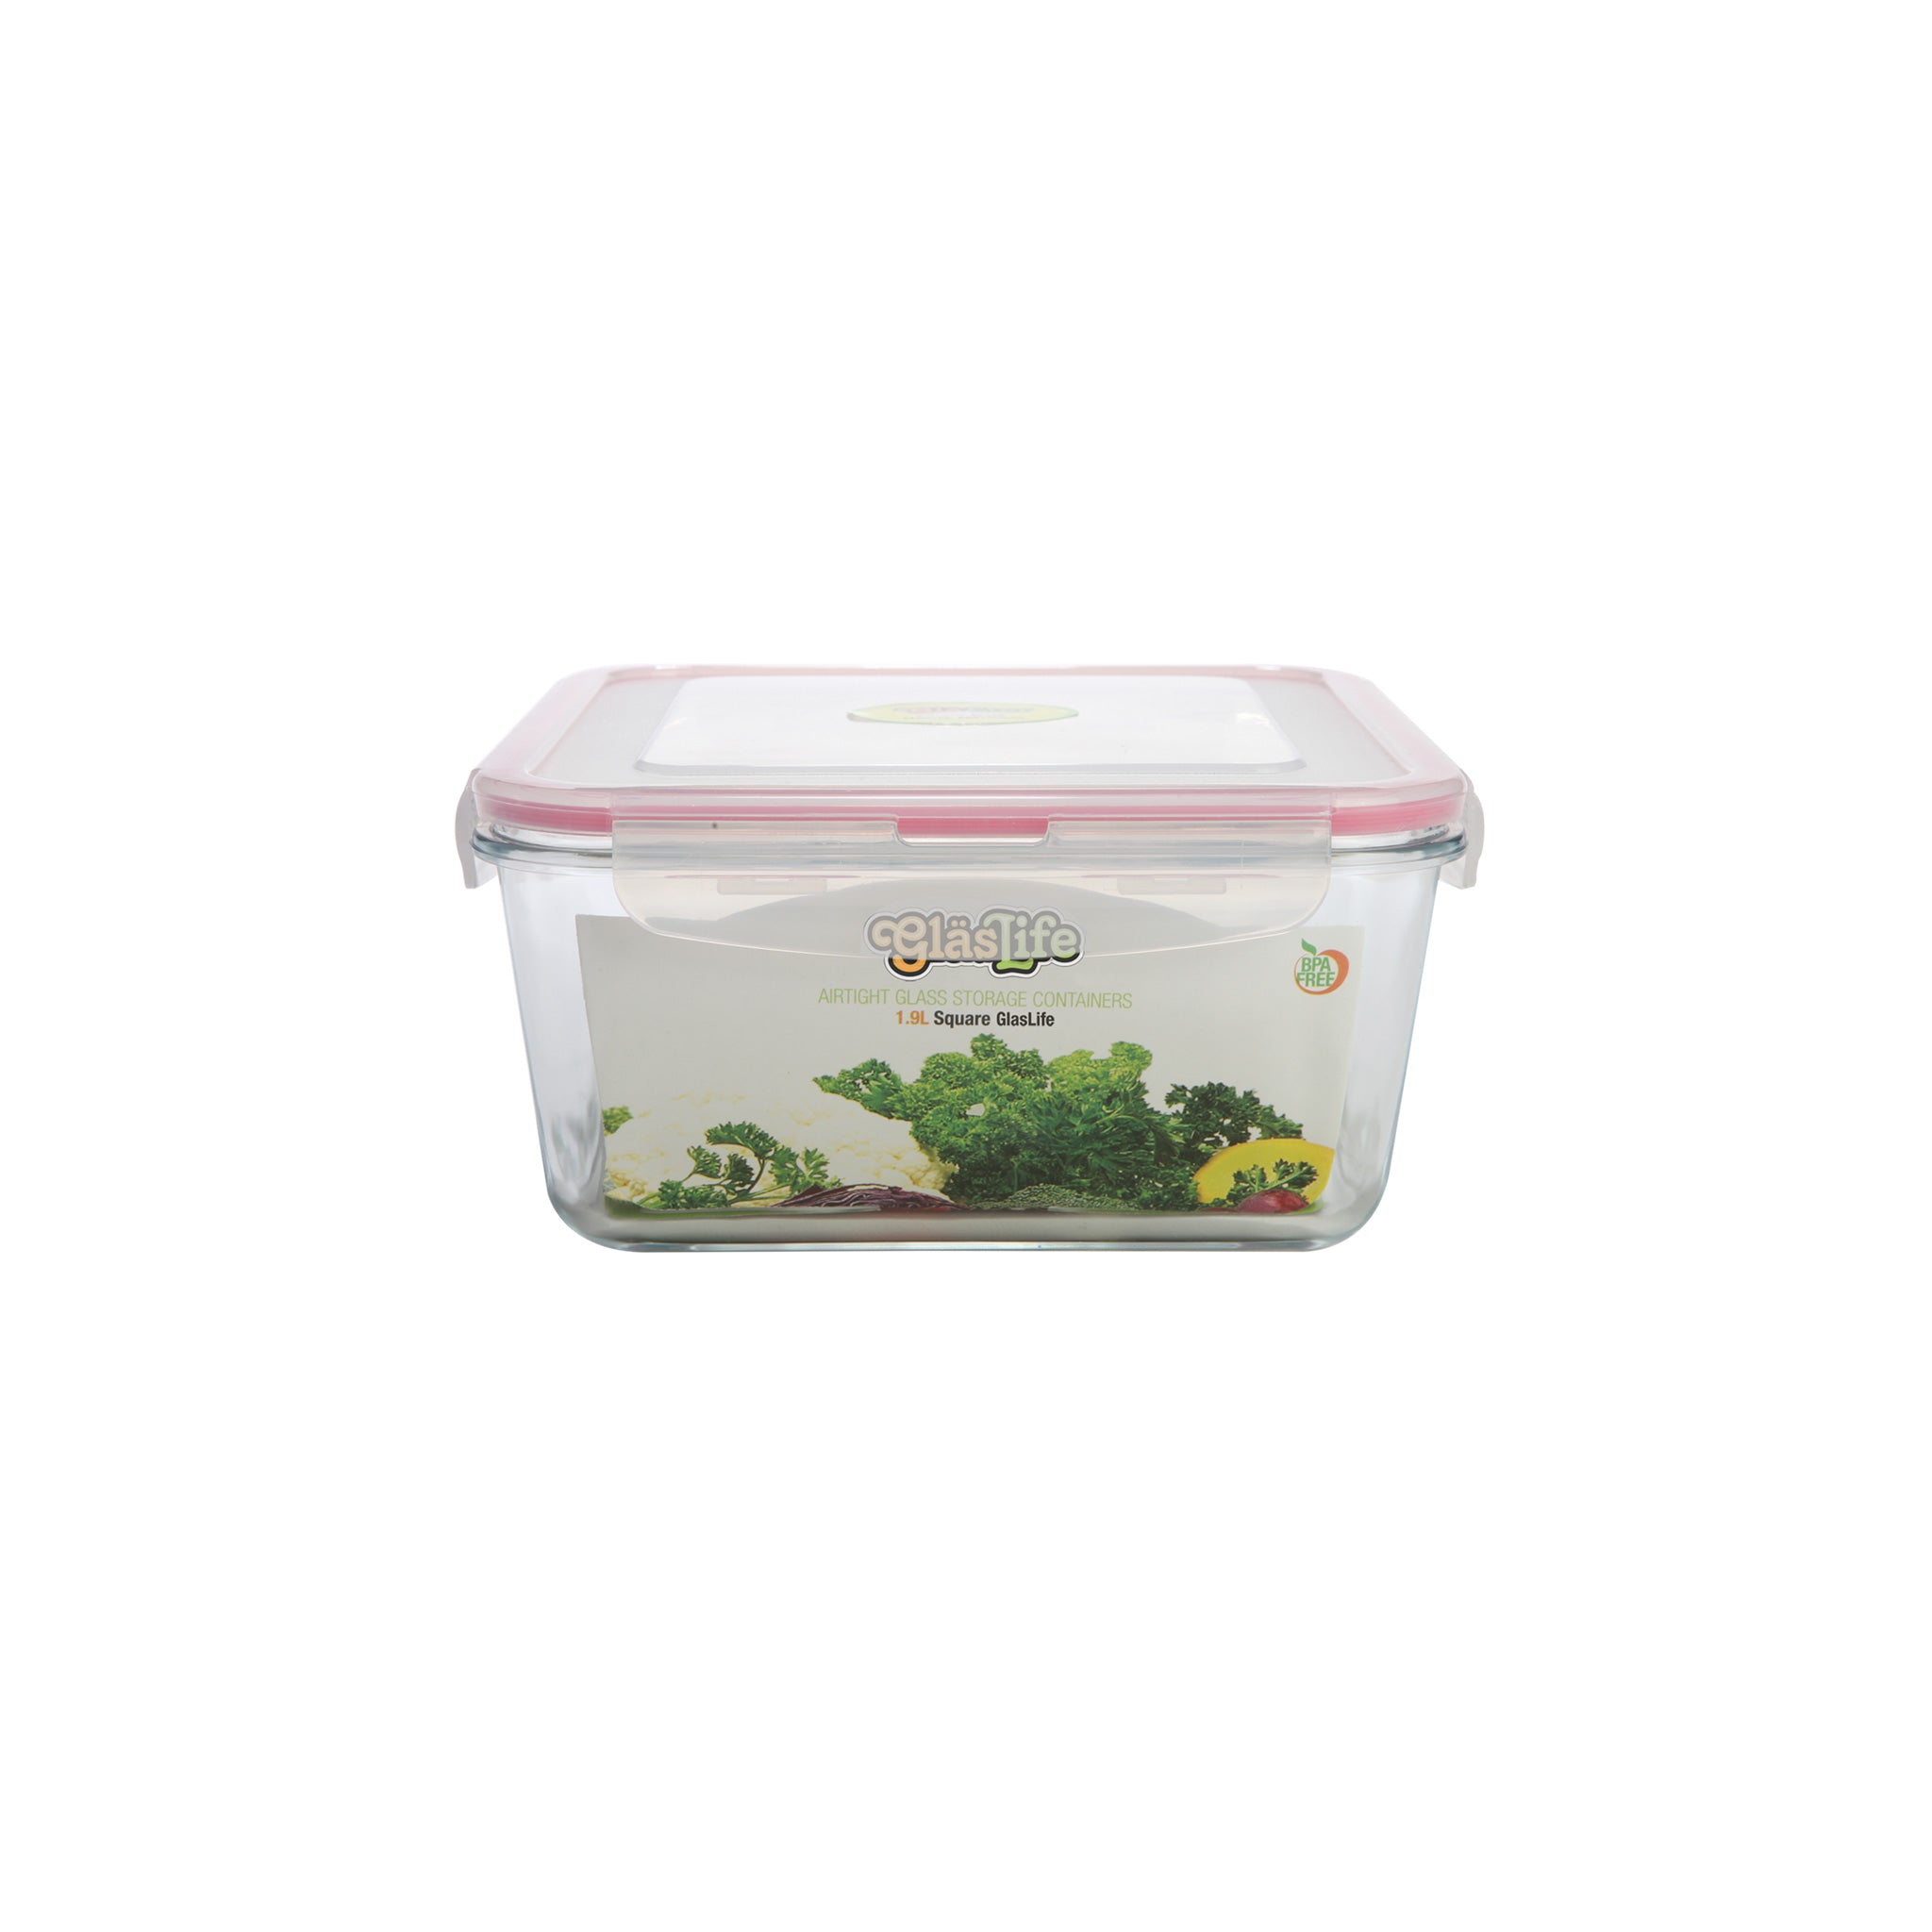 GlasLife® Air-Tight Glass Storage Container - Square GLS05 Small 17 oz / 0.5 L